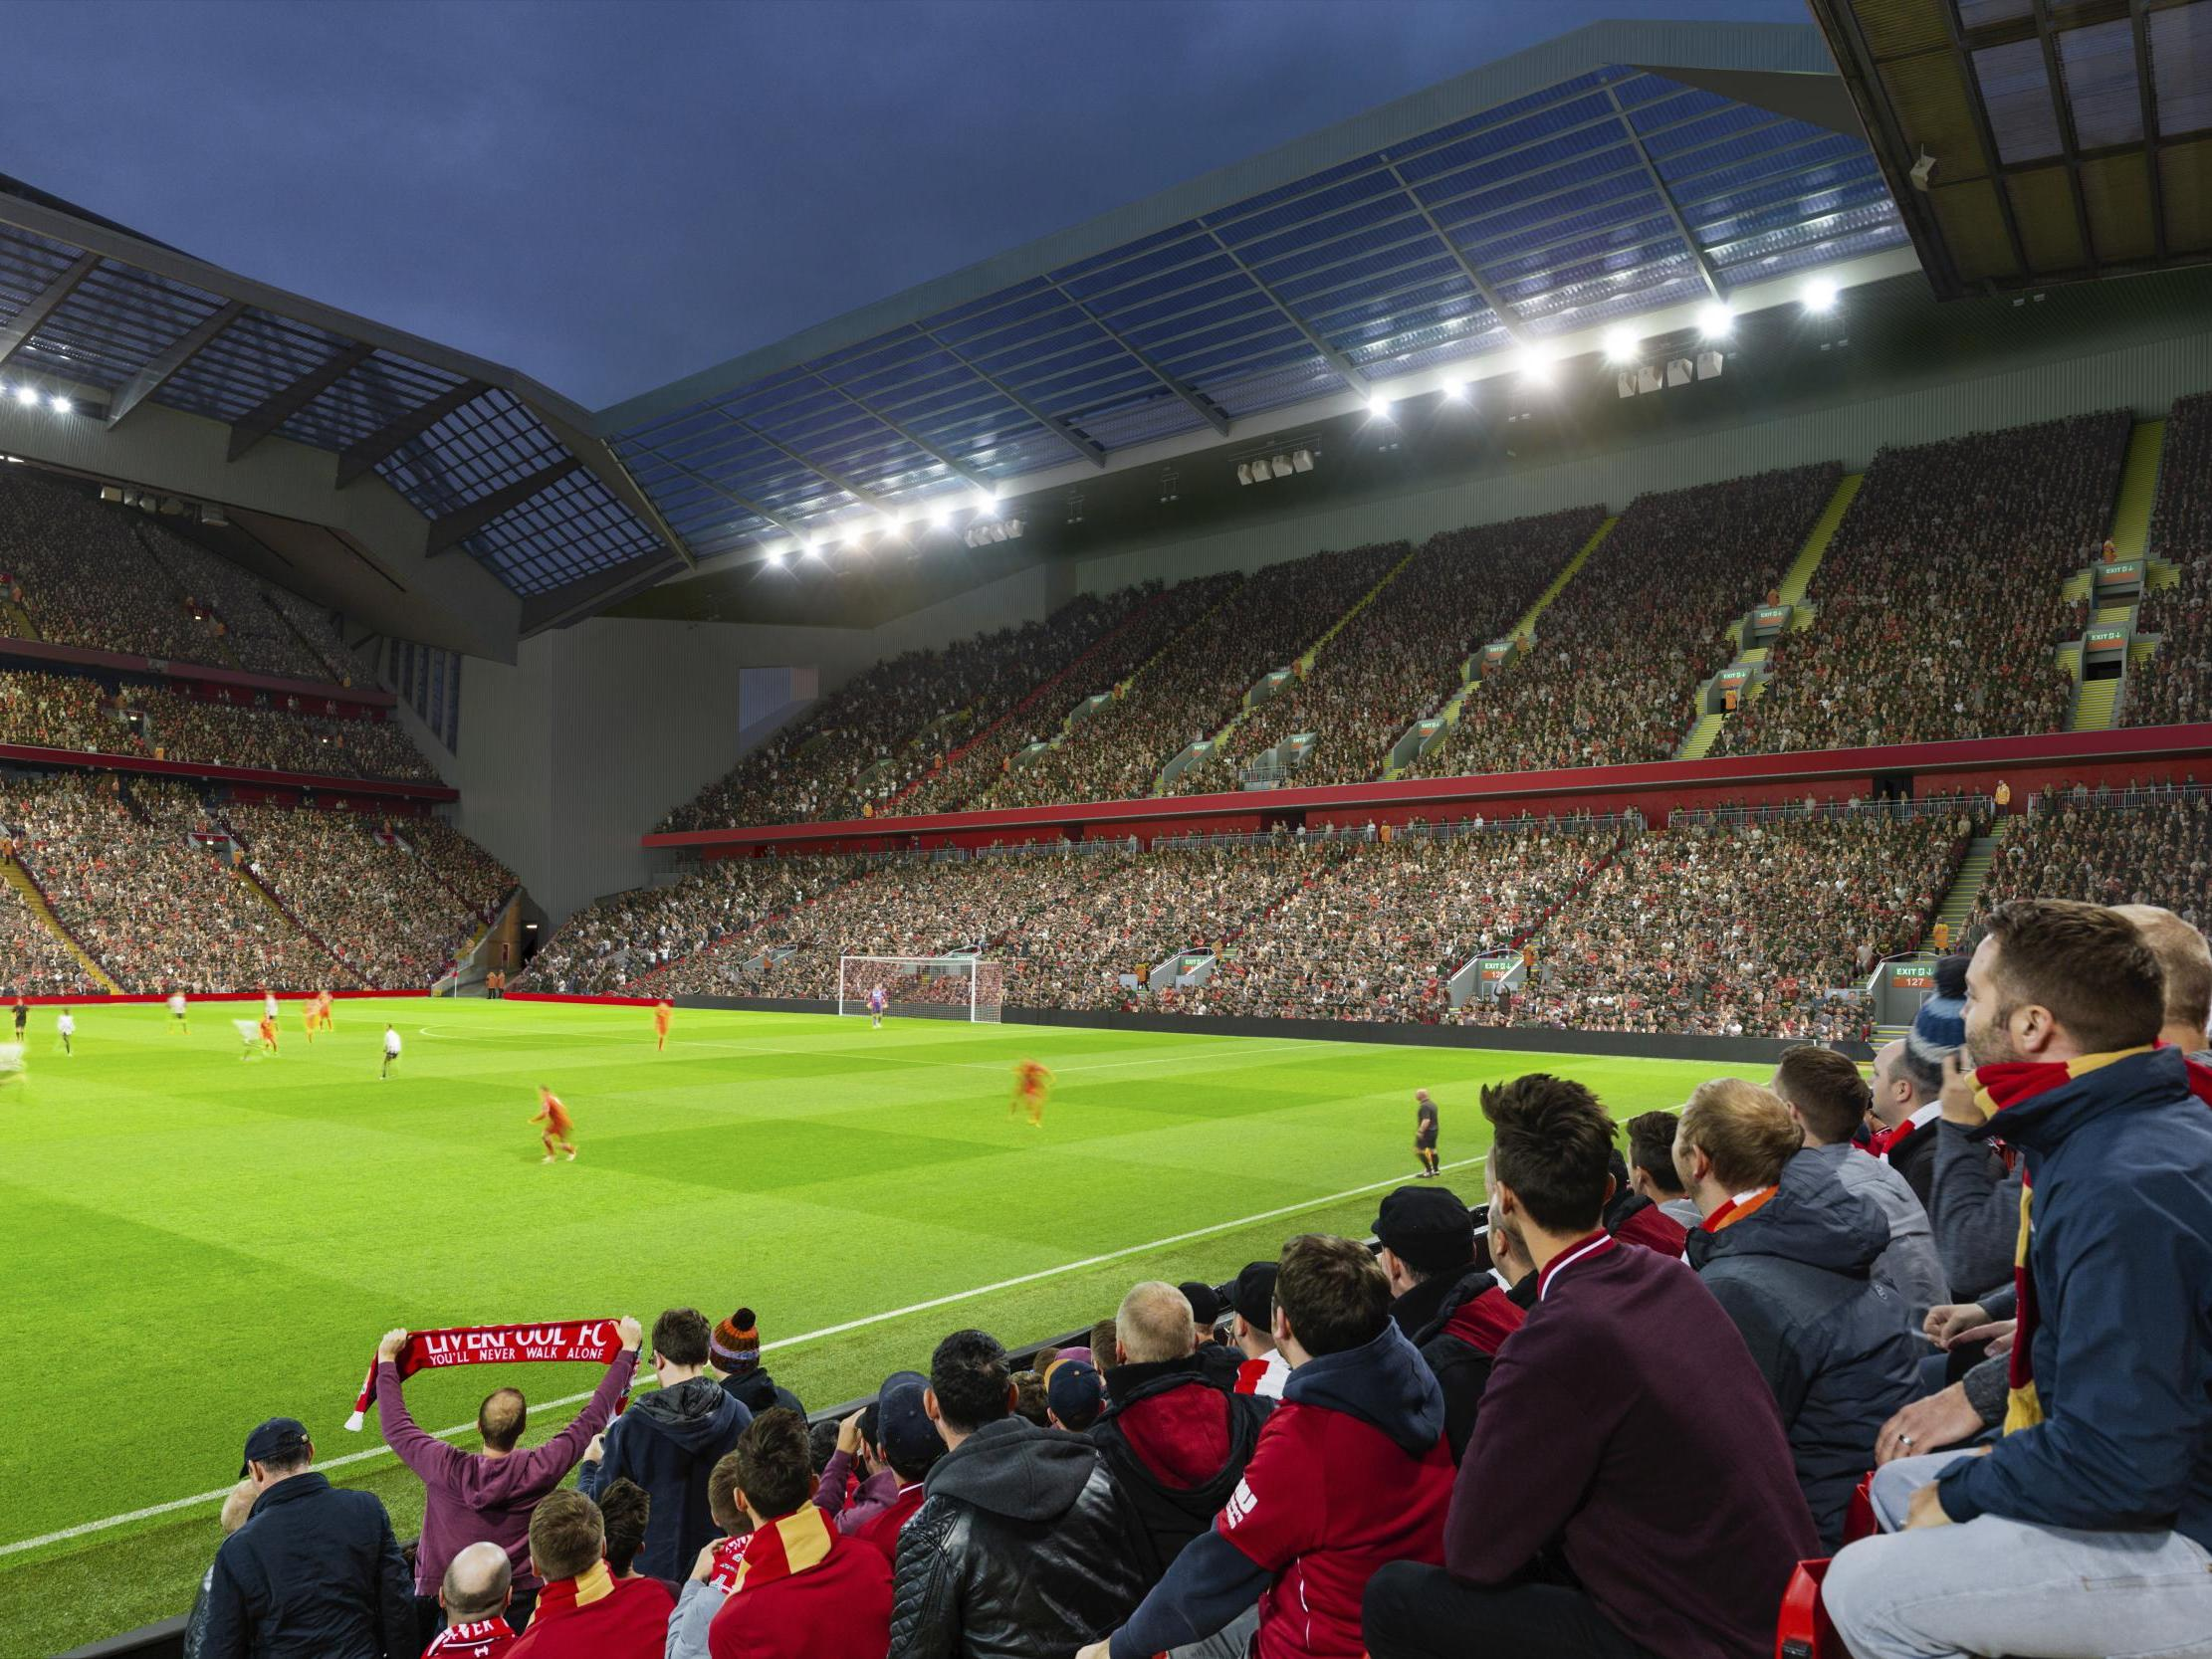 Liverpool plan £60m Anfield Road end redevelopment plan to take capacity up to 61,000